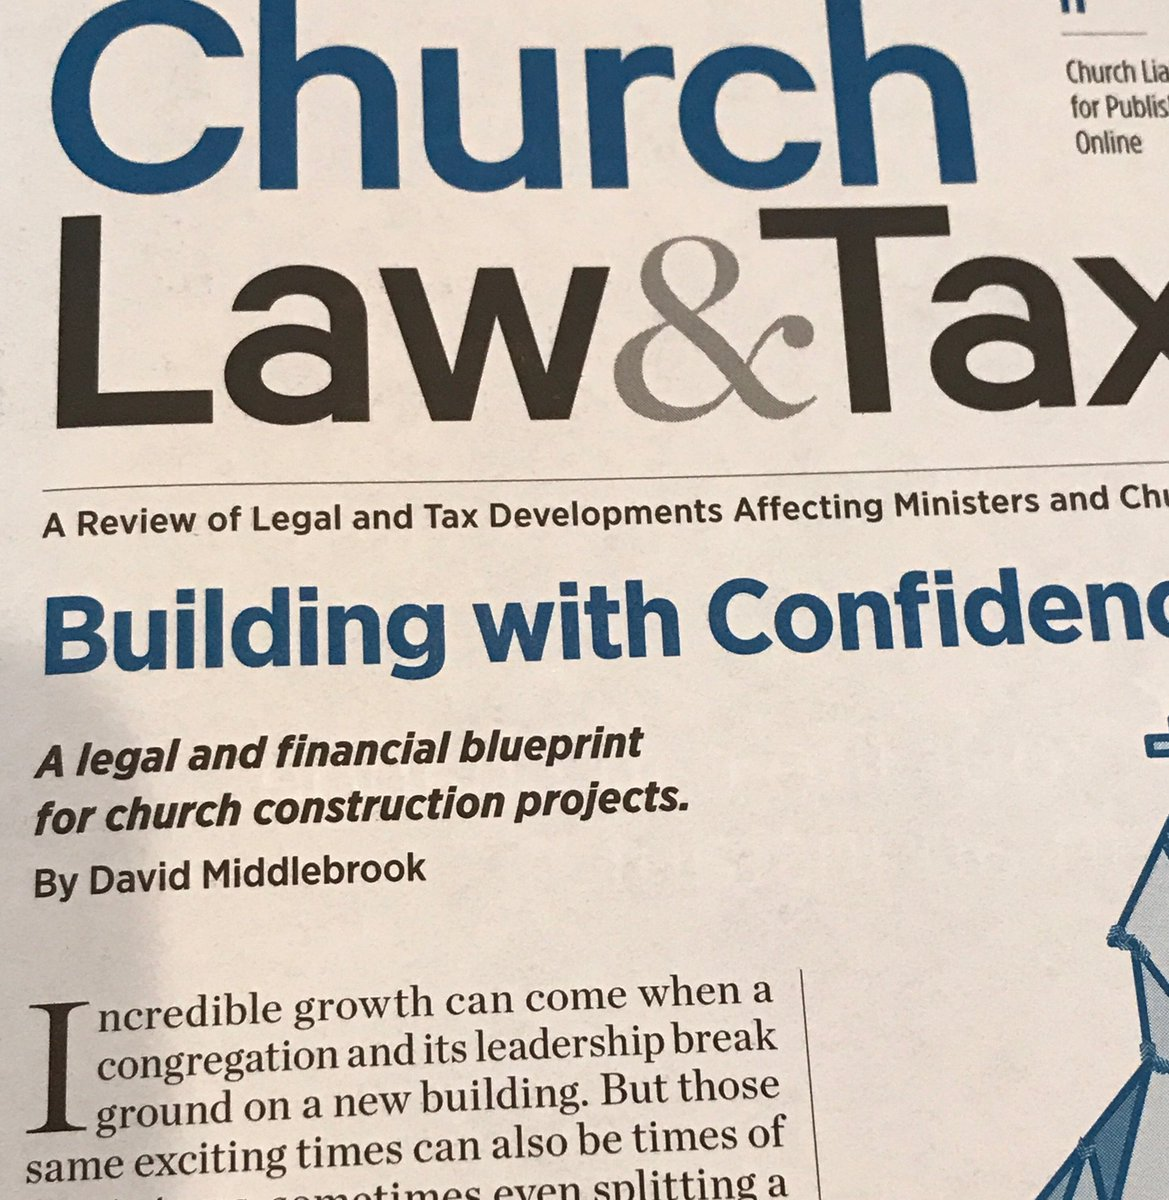 Church law group churchlawgroup twitter 0 replies 4 retweets 3 likes malvernweather Image collections